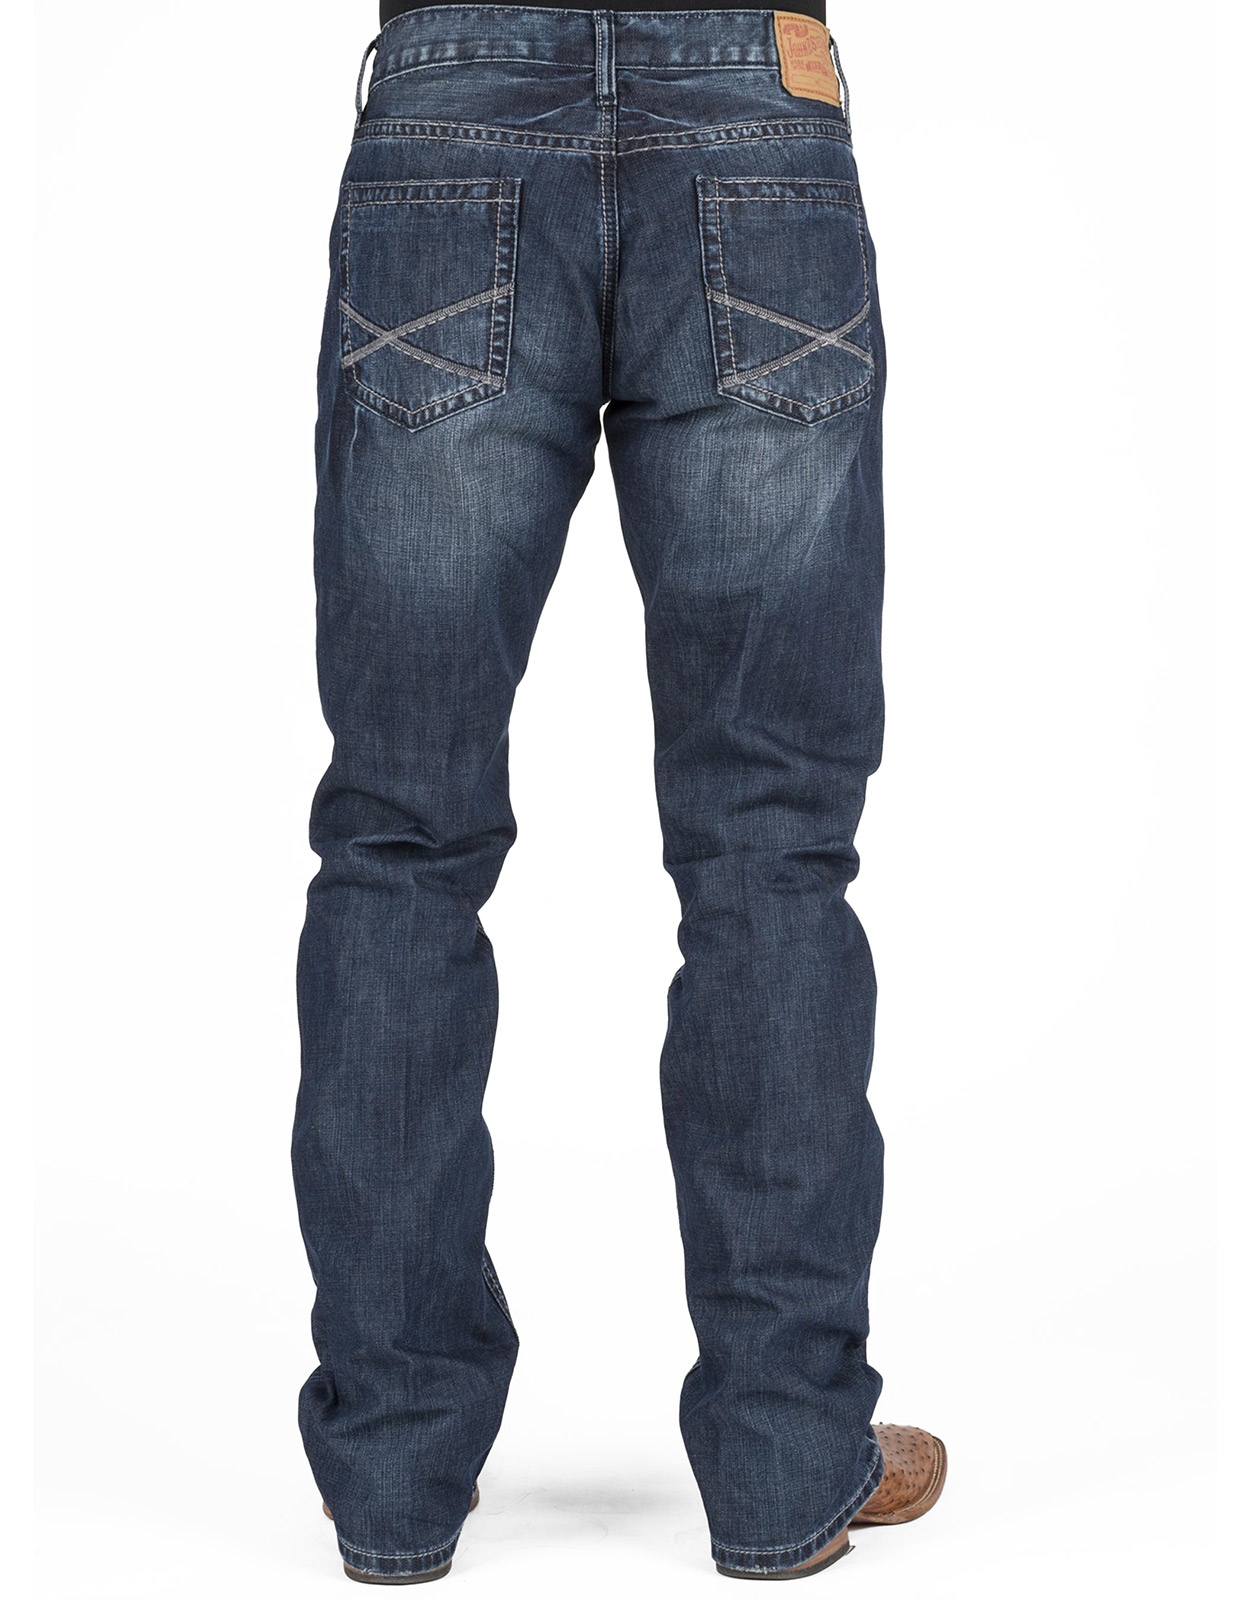 Find great deals on eBay for boys boot cut jeans. Shop with confidence.